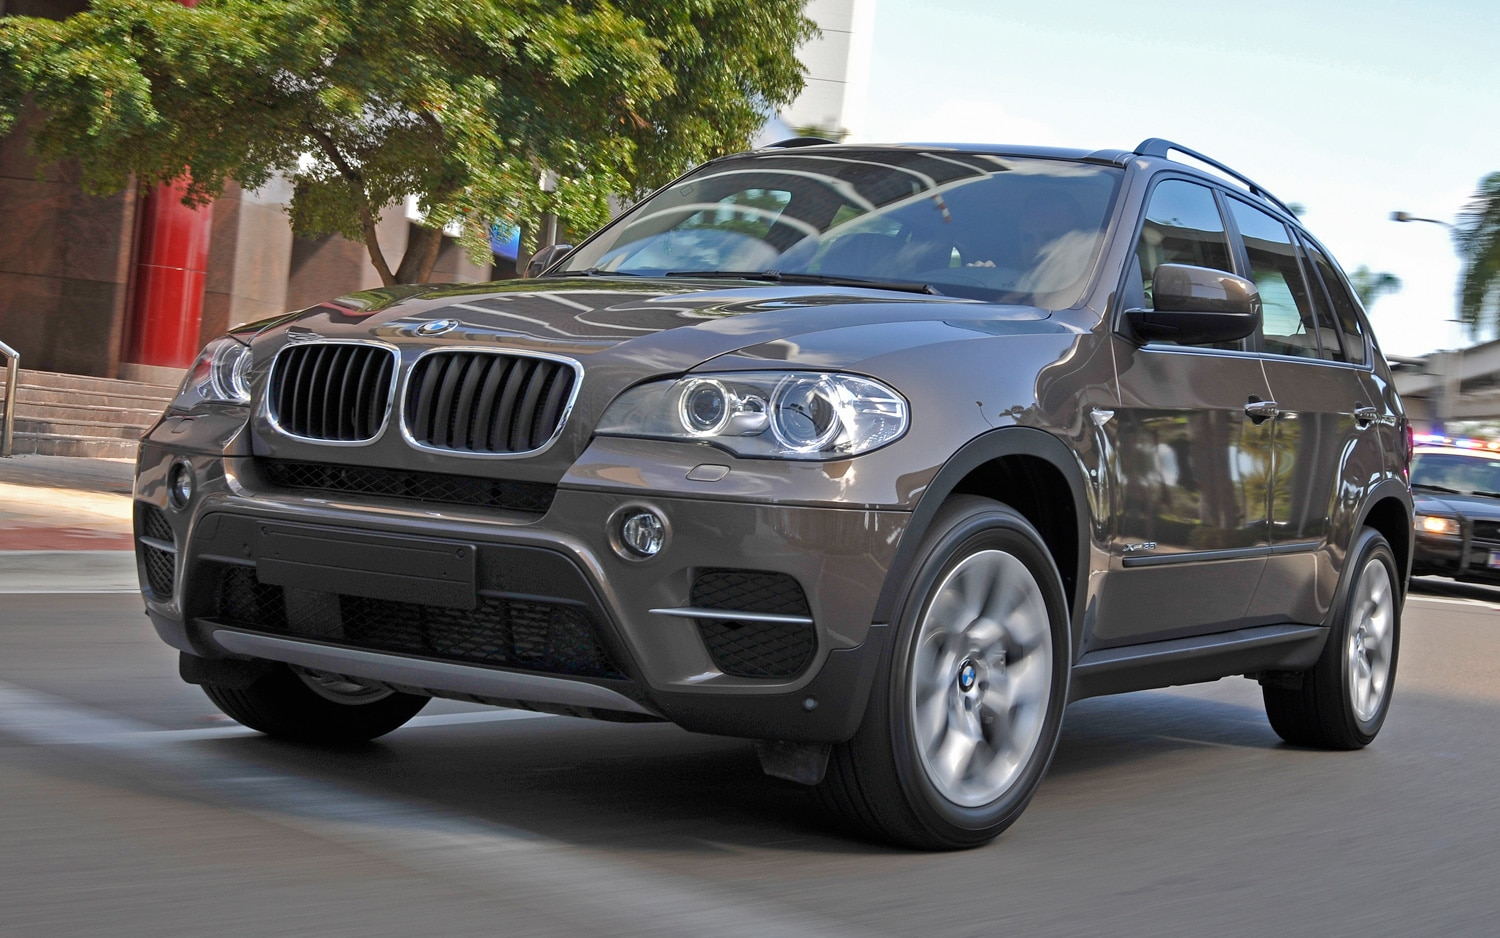 2011 BMW X5 Front View1